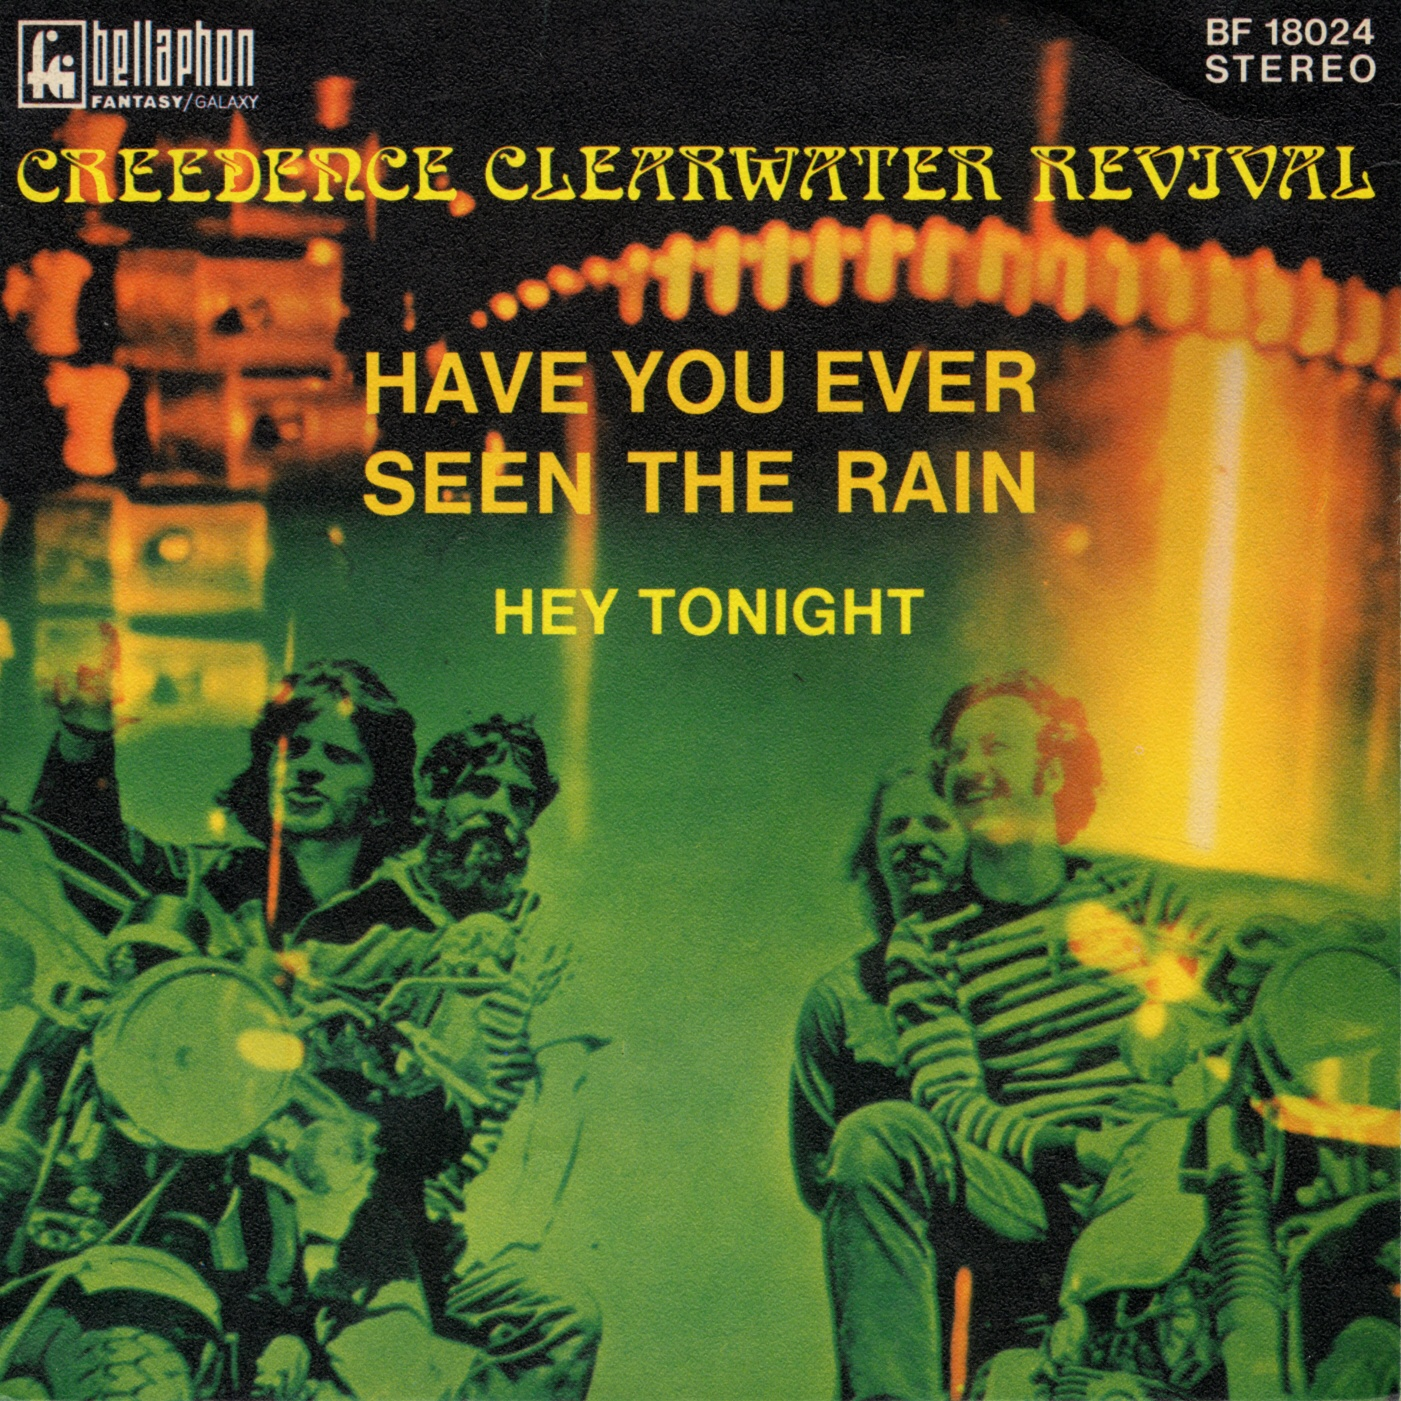 Cover: Have you ever seen the rain, Creedence Clearwater Revival